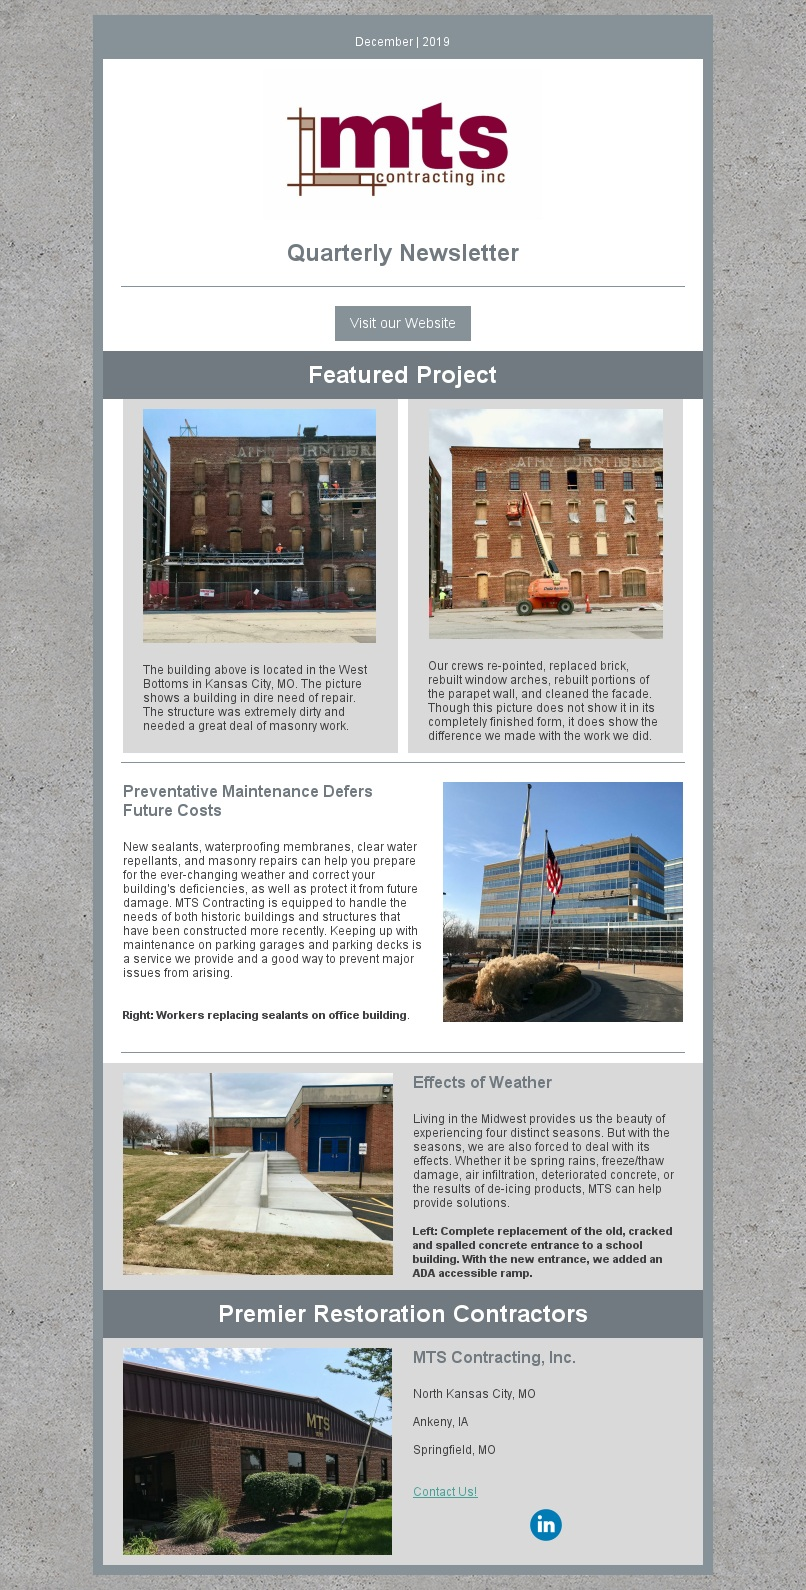 Cleaning and masonry work done on old building in the West Bottoms in Kansas City, MO. New sealants, waterproofing membranes, clear water repellants, and masonry repairs.